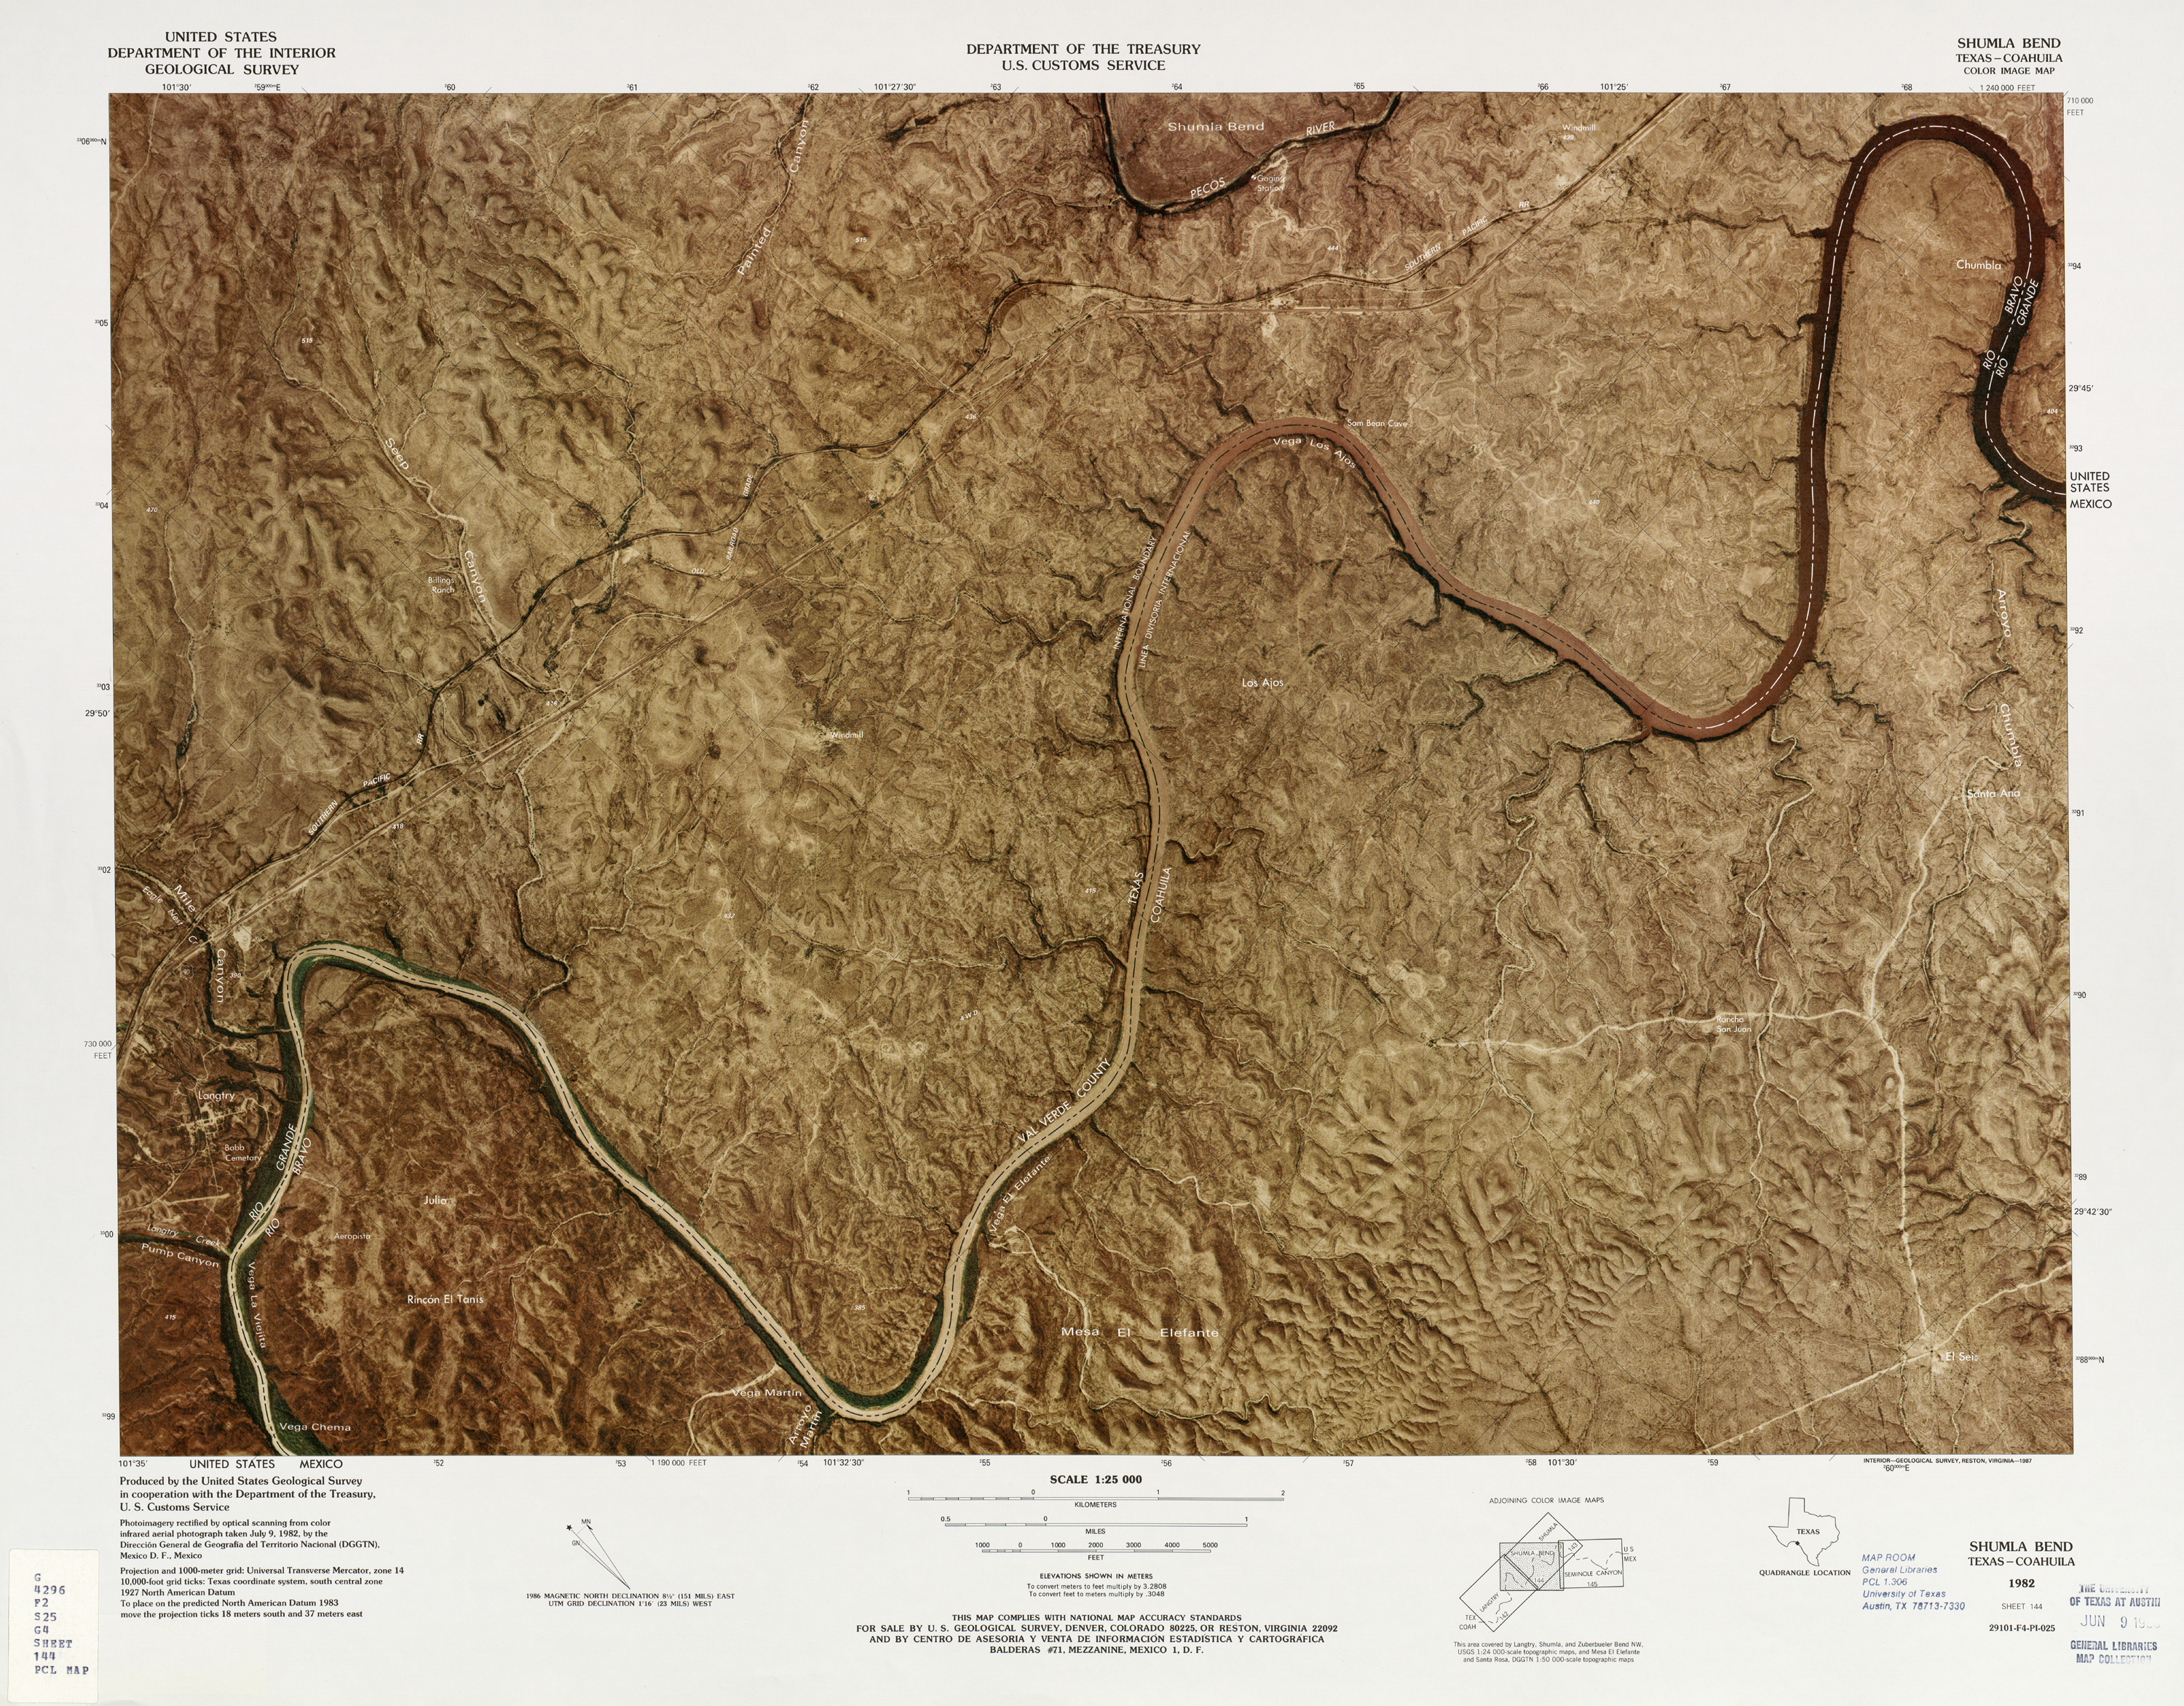 United States-Mexico Border Map, Shumla Bend